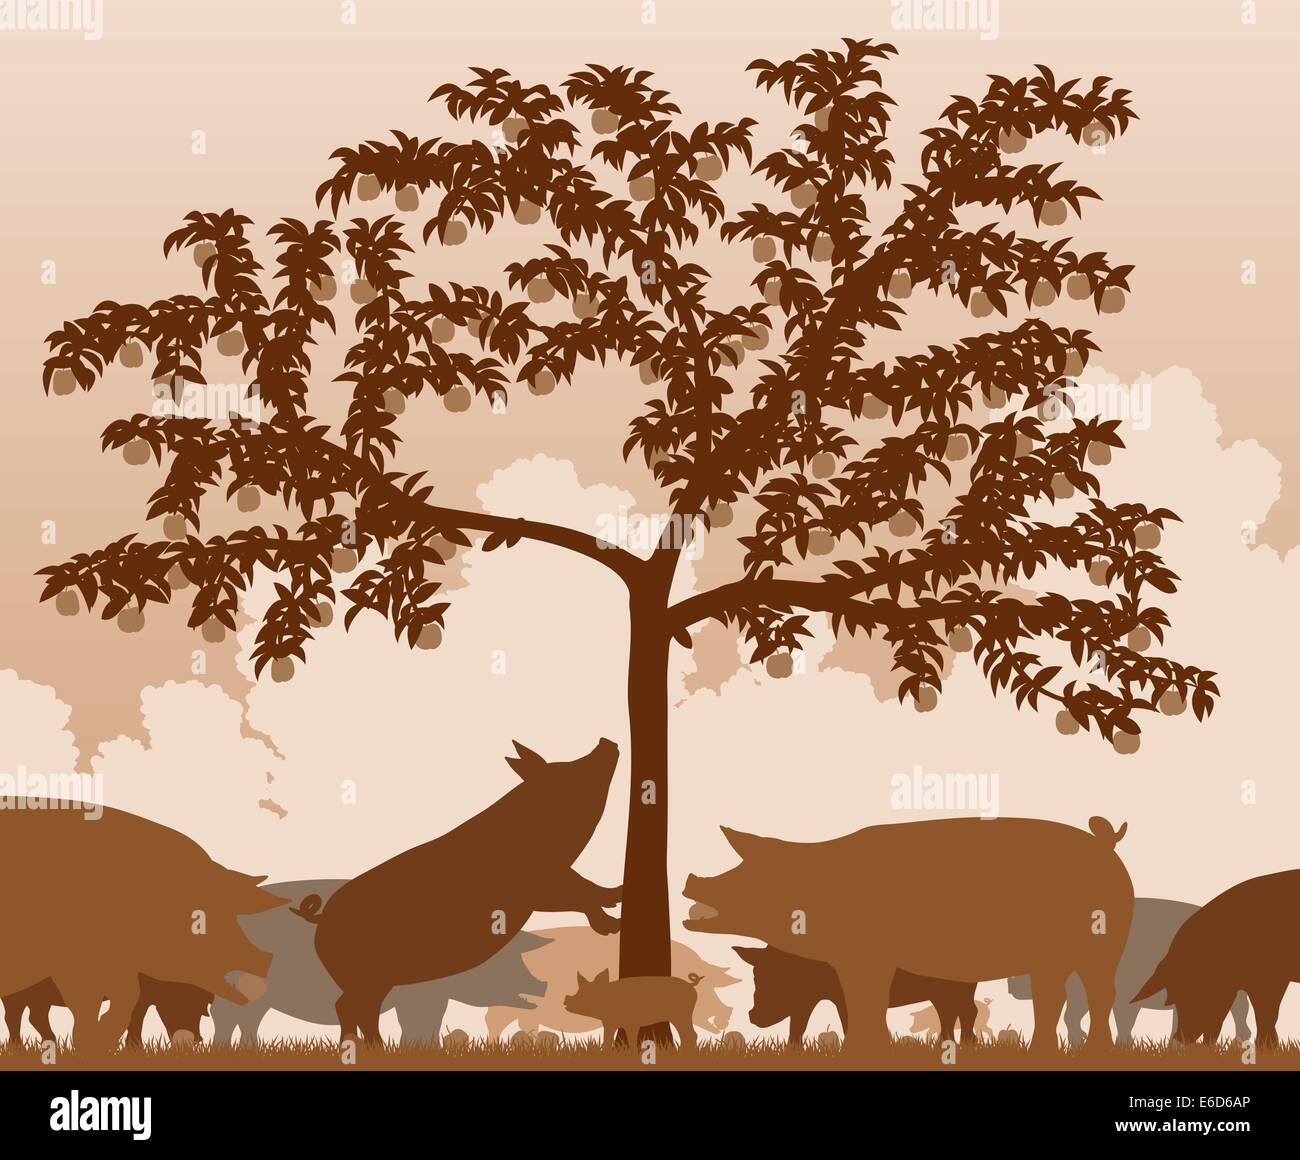 Editable vector illustration of free-range pigs feeding under an apple tree with all figures as separate objects - Stock Vector